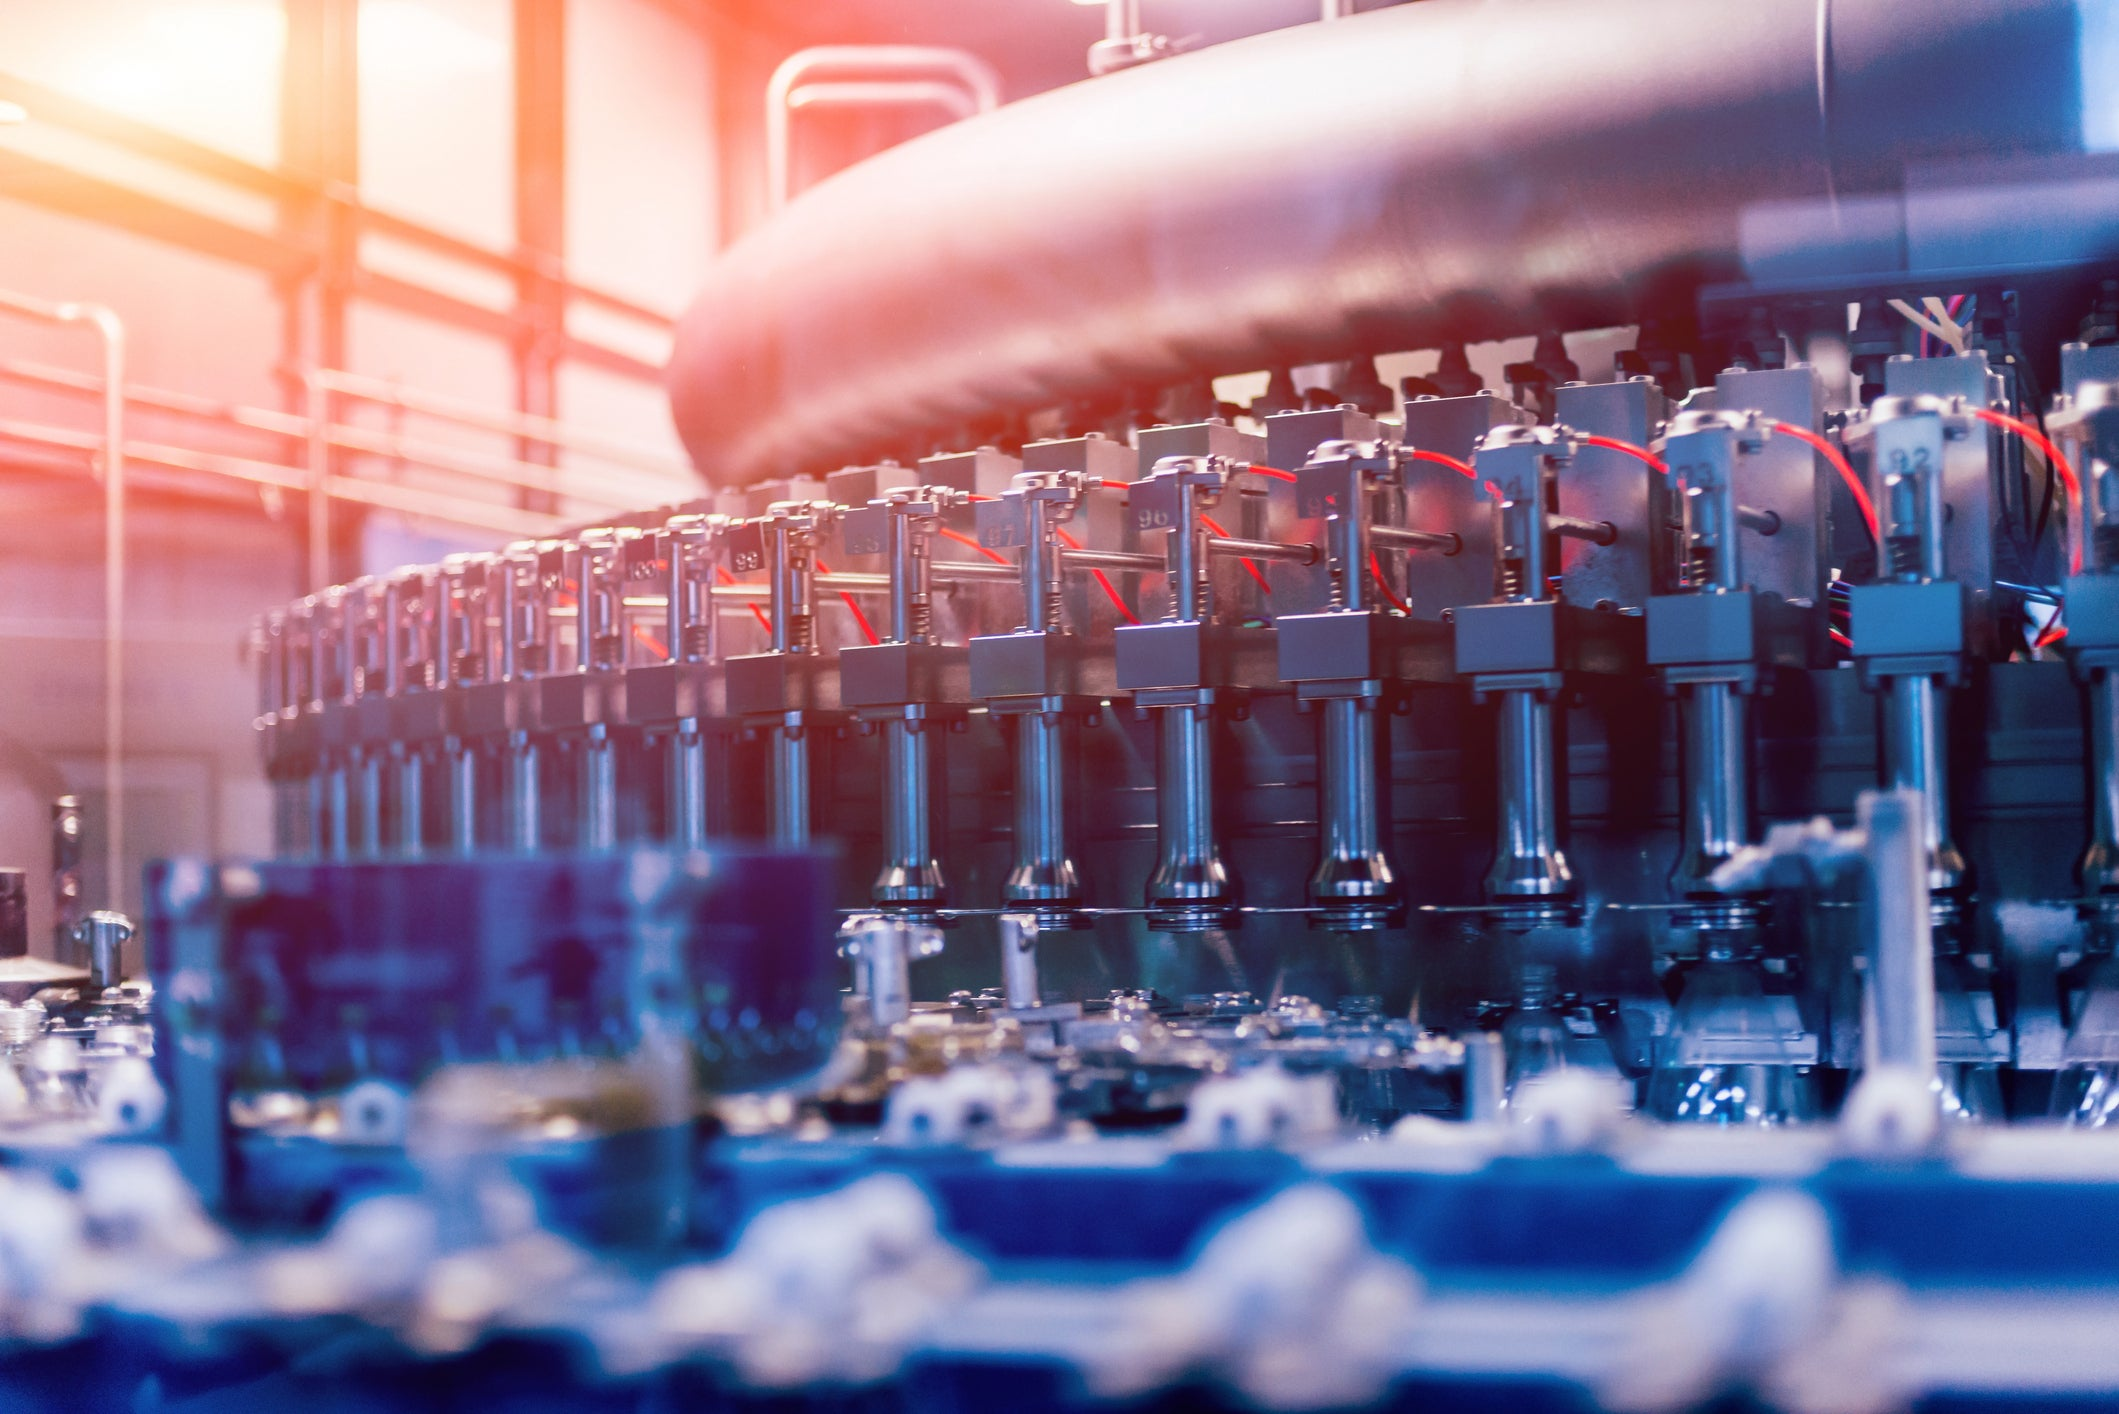 Industrial automation in the food and beverage industry.